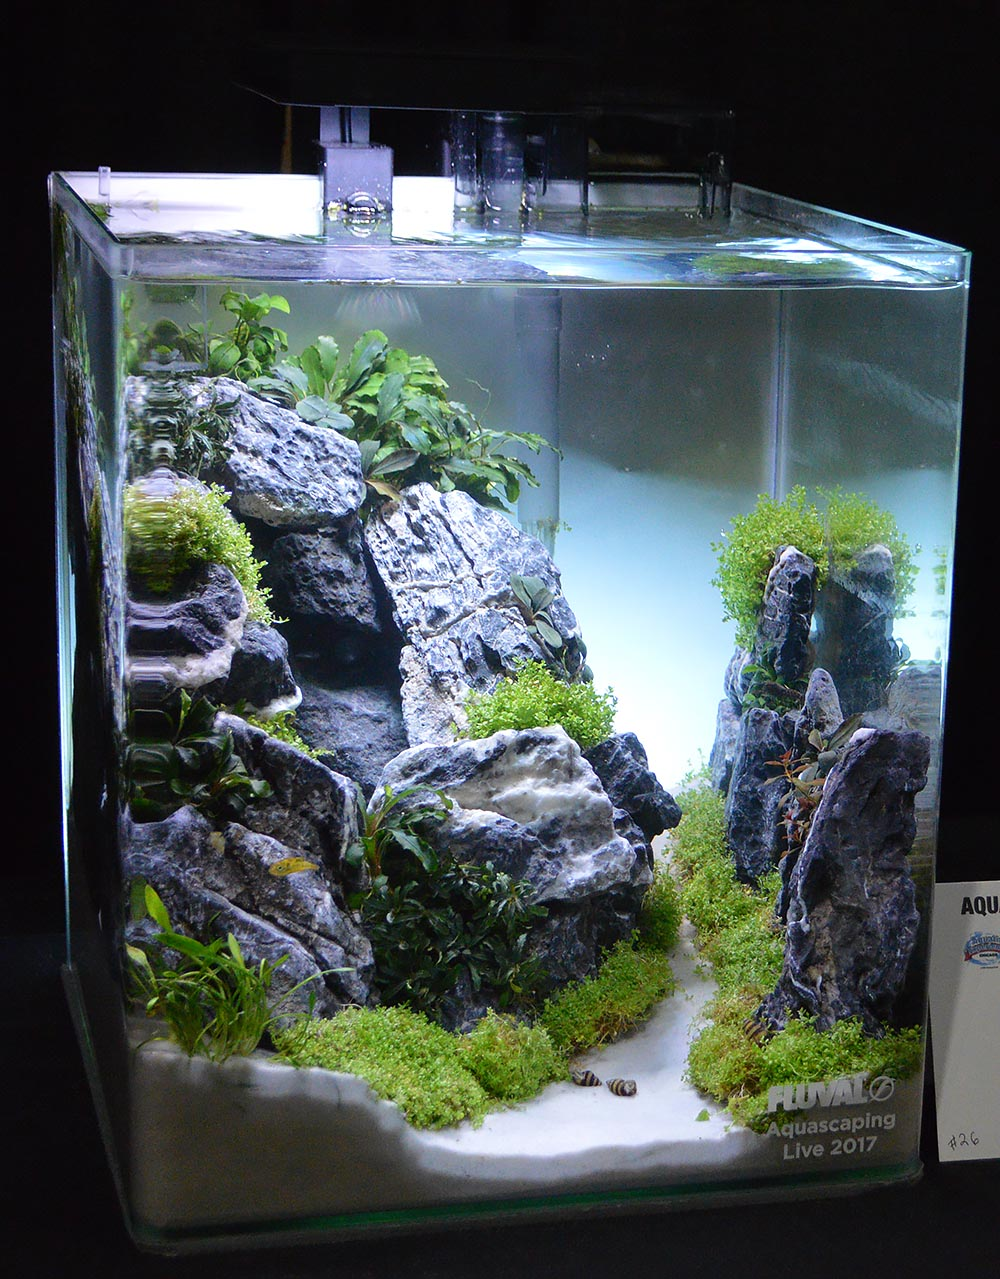 Aquascape by Kory Smith